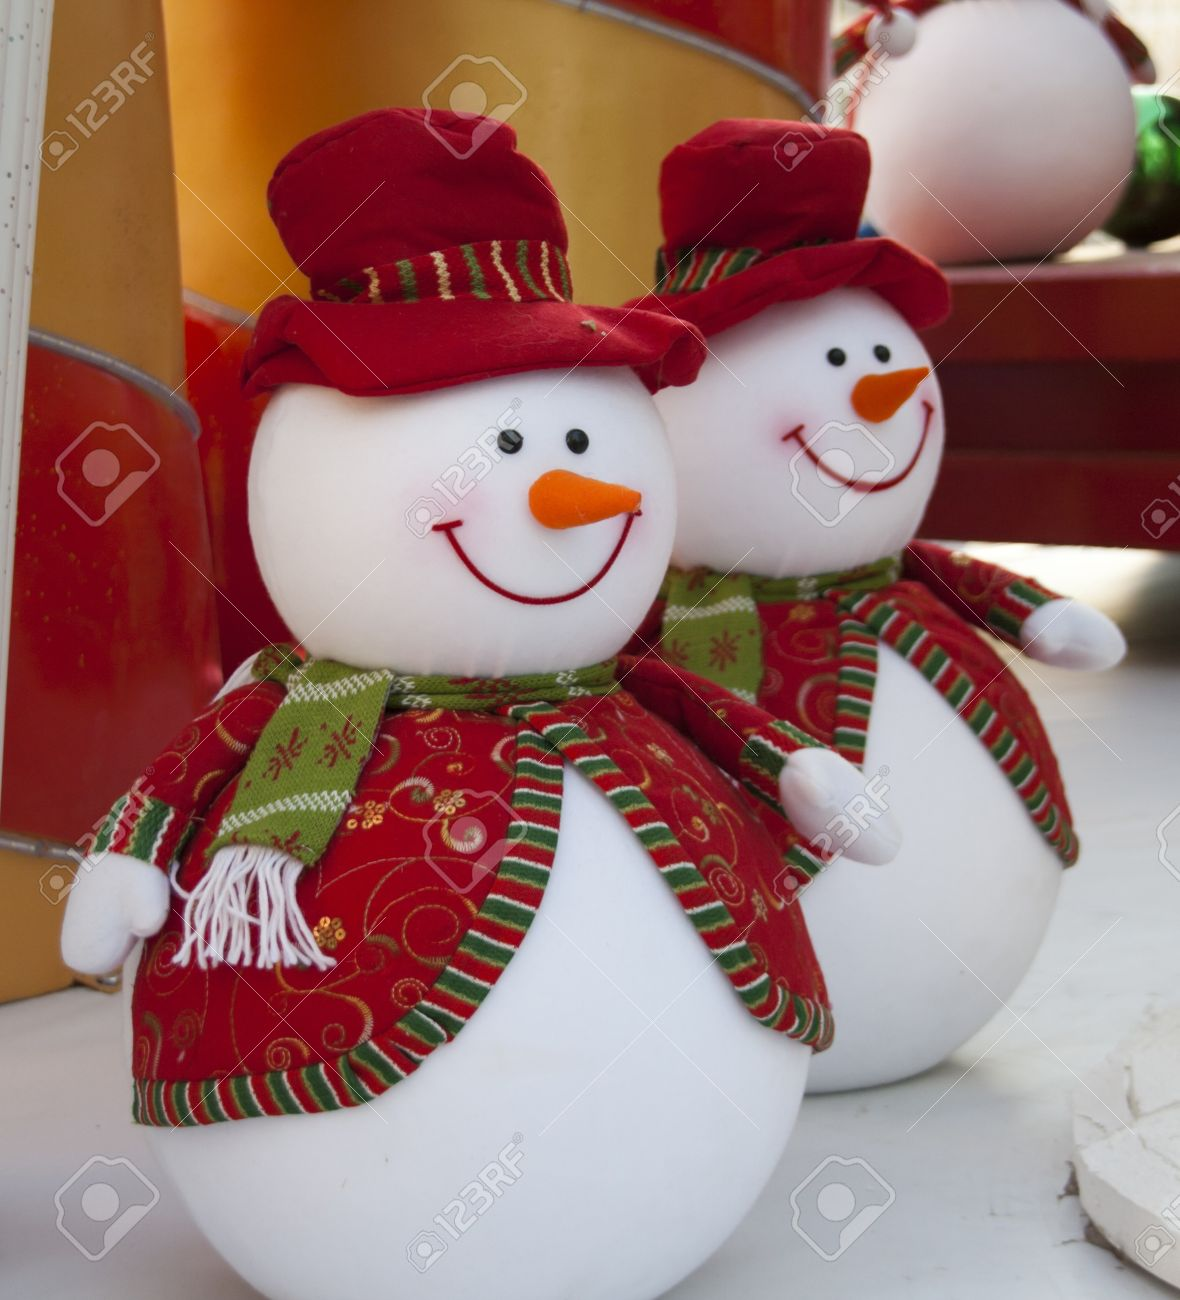 snowman christmas decoration in outdoor stock photo 16747461 - Snowman Christmas Decorations